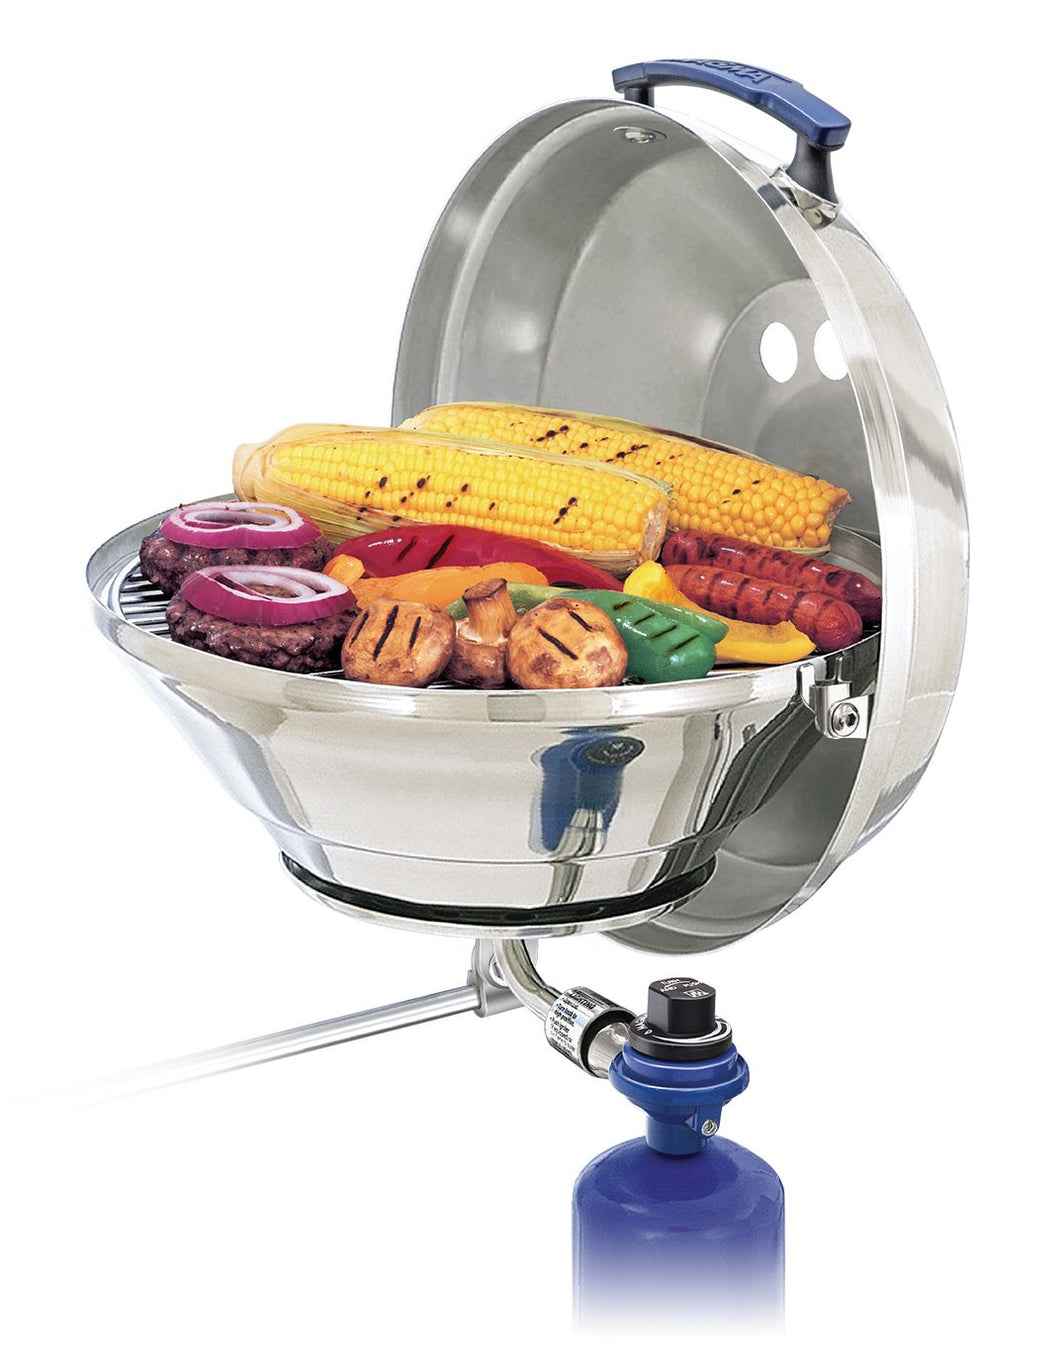 Original Marine Kettle grill rail mounted with grilled hamburgers, saugsages and vegetables